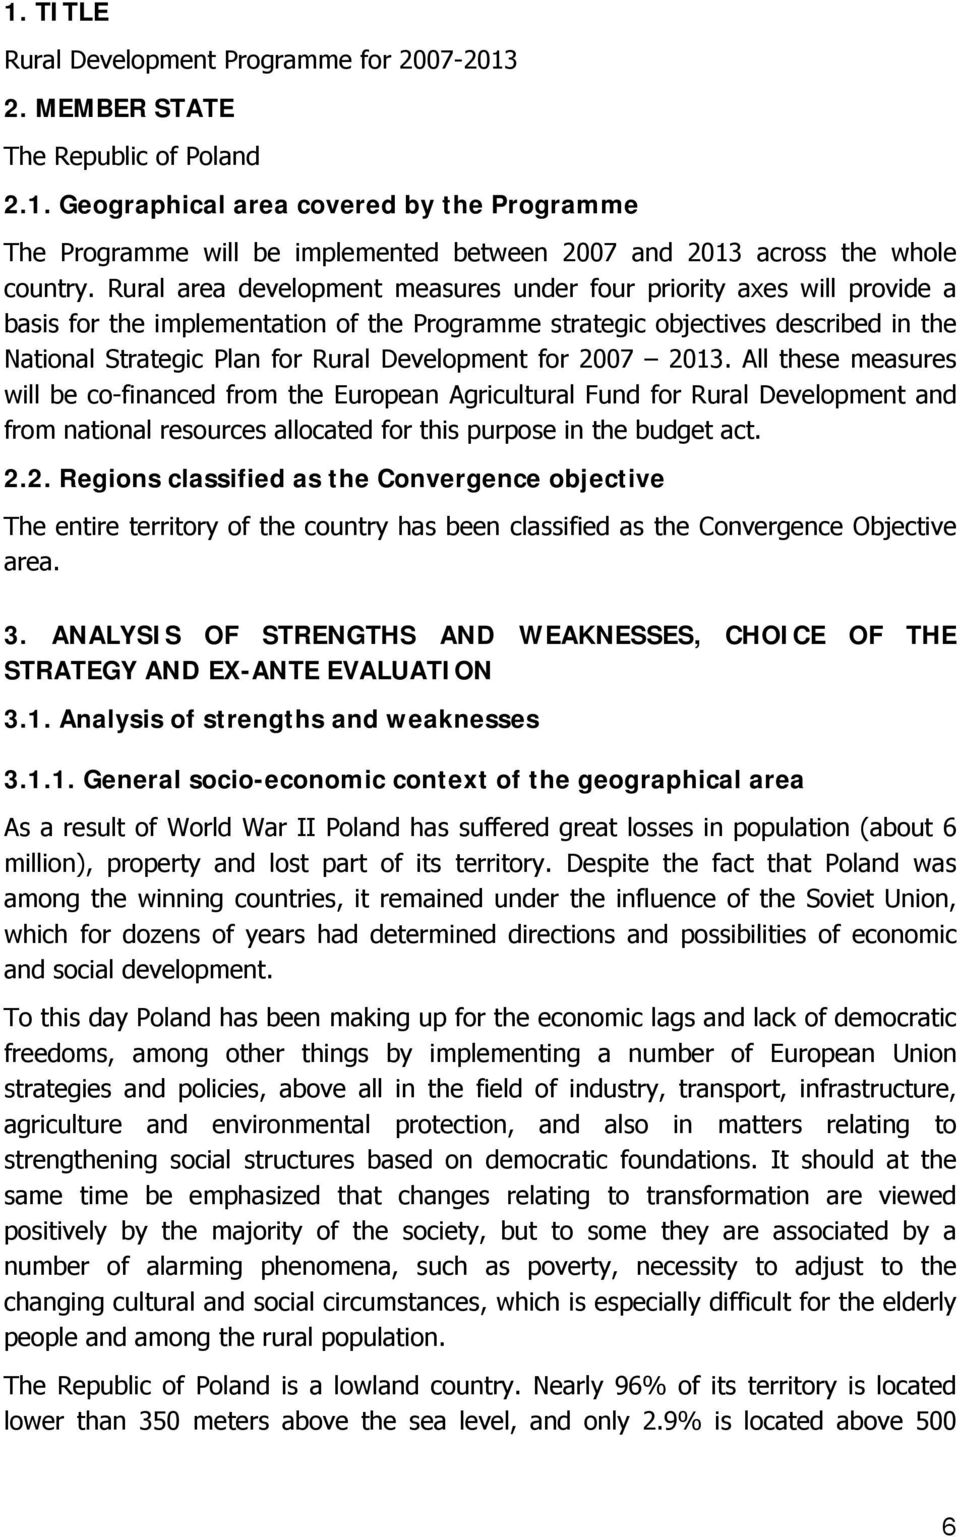 Development for 2007 2013. All these measures will be co-financed from the European Agricultural Fund for Rural Development and from national resources allocated for this purpose in the budget act. 2.2. Regions classified as the Convergence objective The entire territory of the country has been classified as the Convergence Objective area.